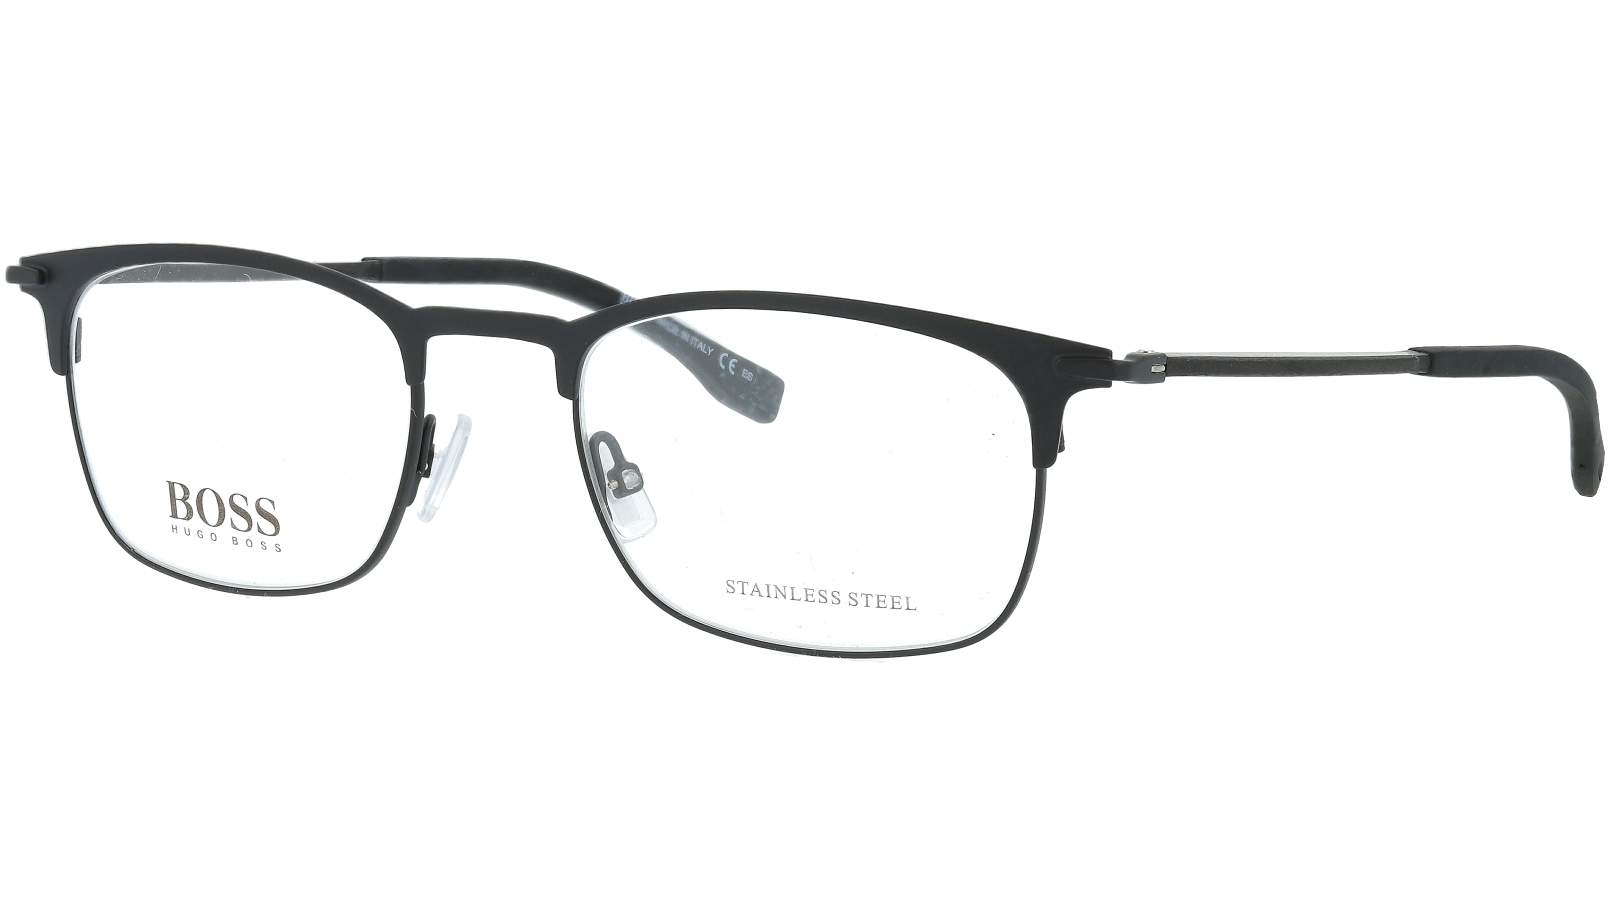 HUGO BOSS BOSS1018 003 52 MATT Glasses